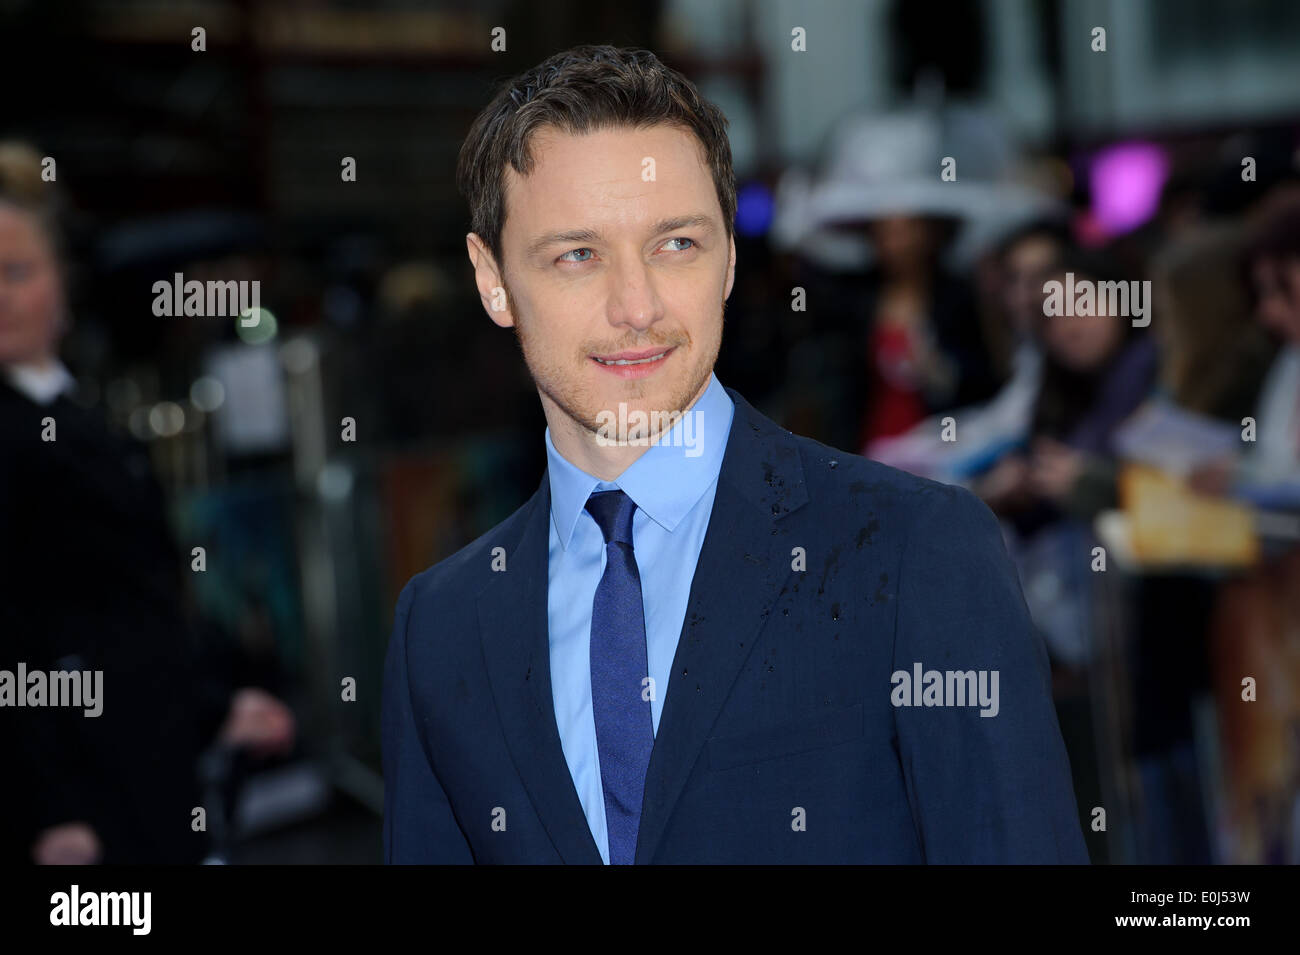 James McAvoy arrives for the UK Premiere of X-Men Days Of Future Past. - Stock Image